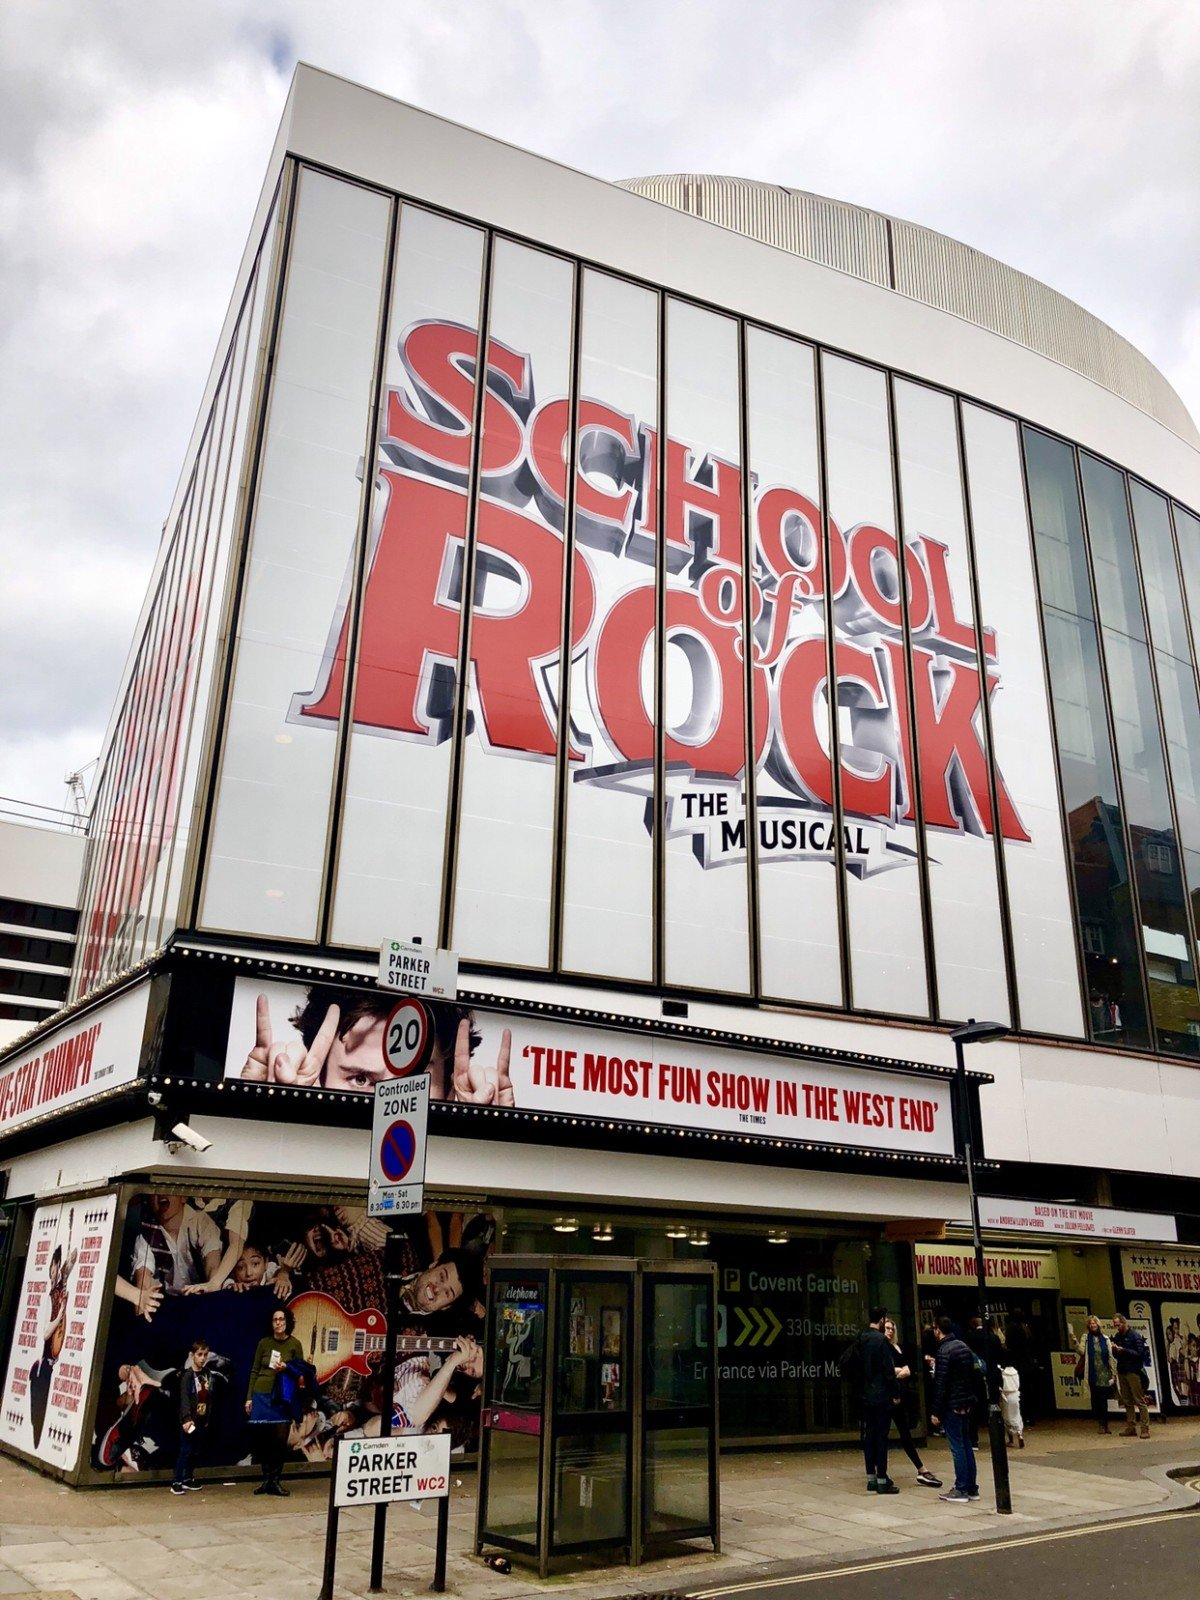 School of Rock New London Theatre How to get cheap theatre tickets in London